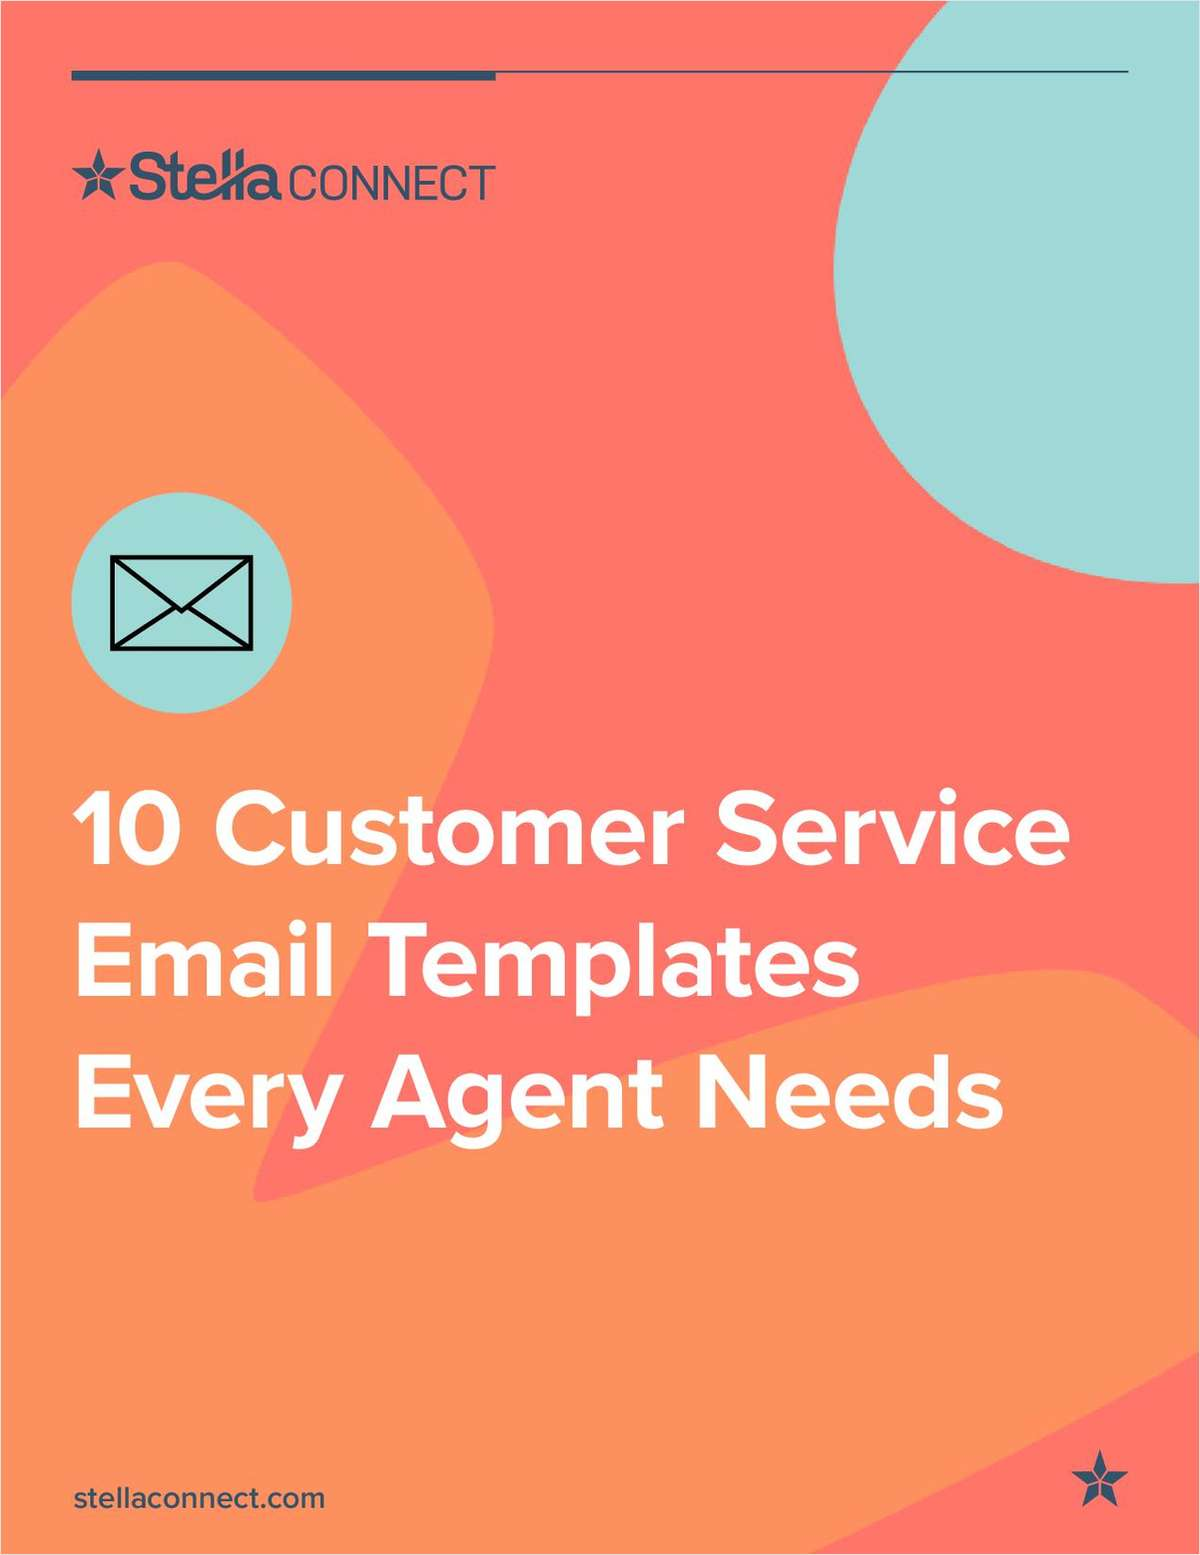 10 Customer Service Email Templates Every Agent Needs